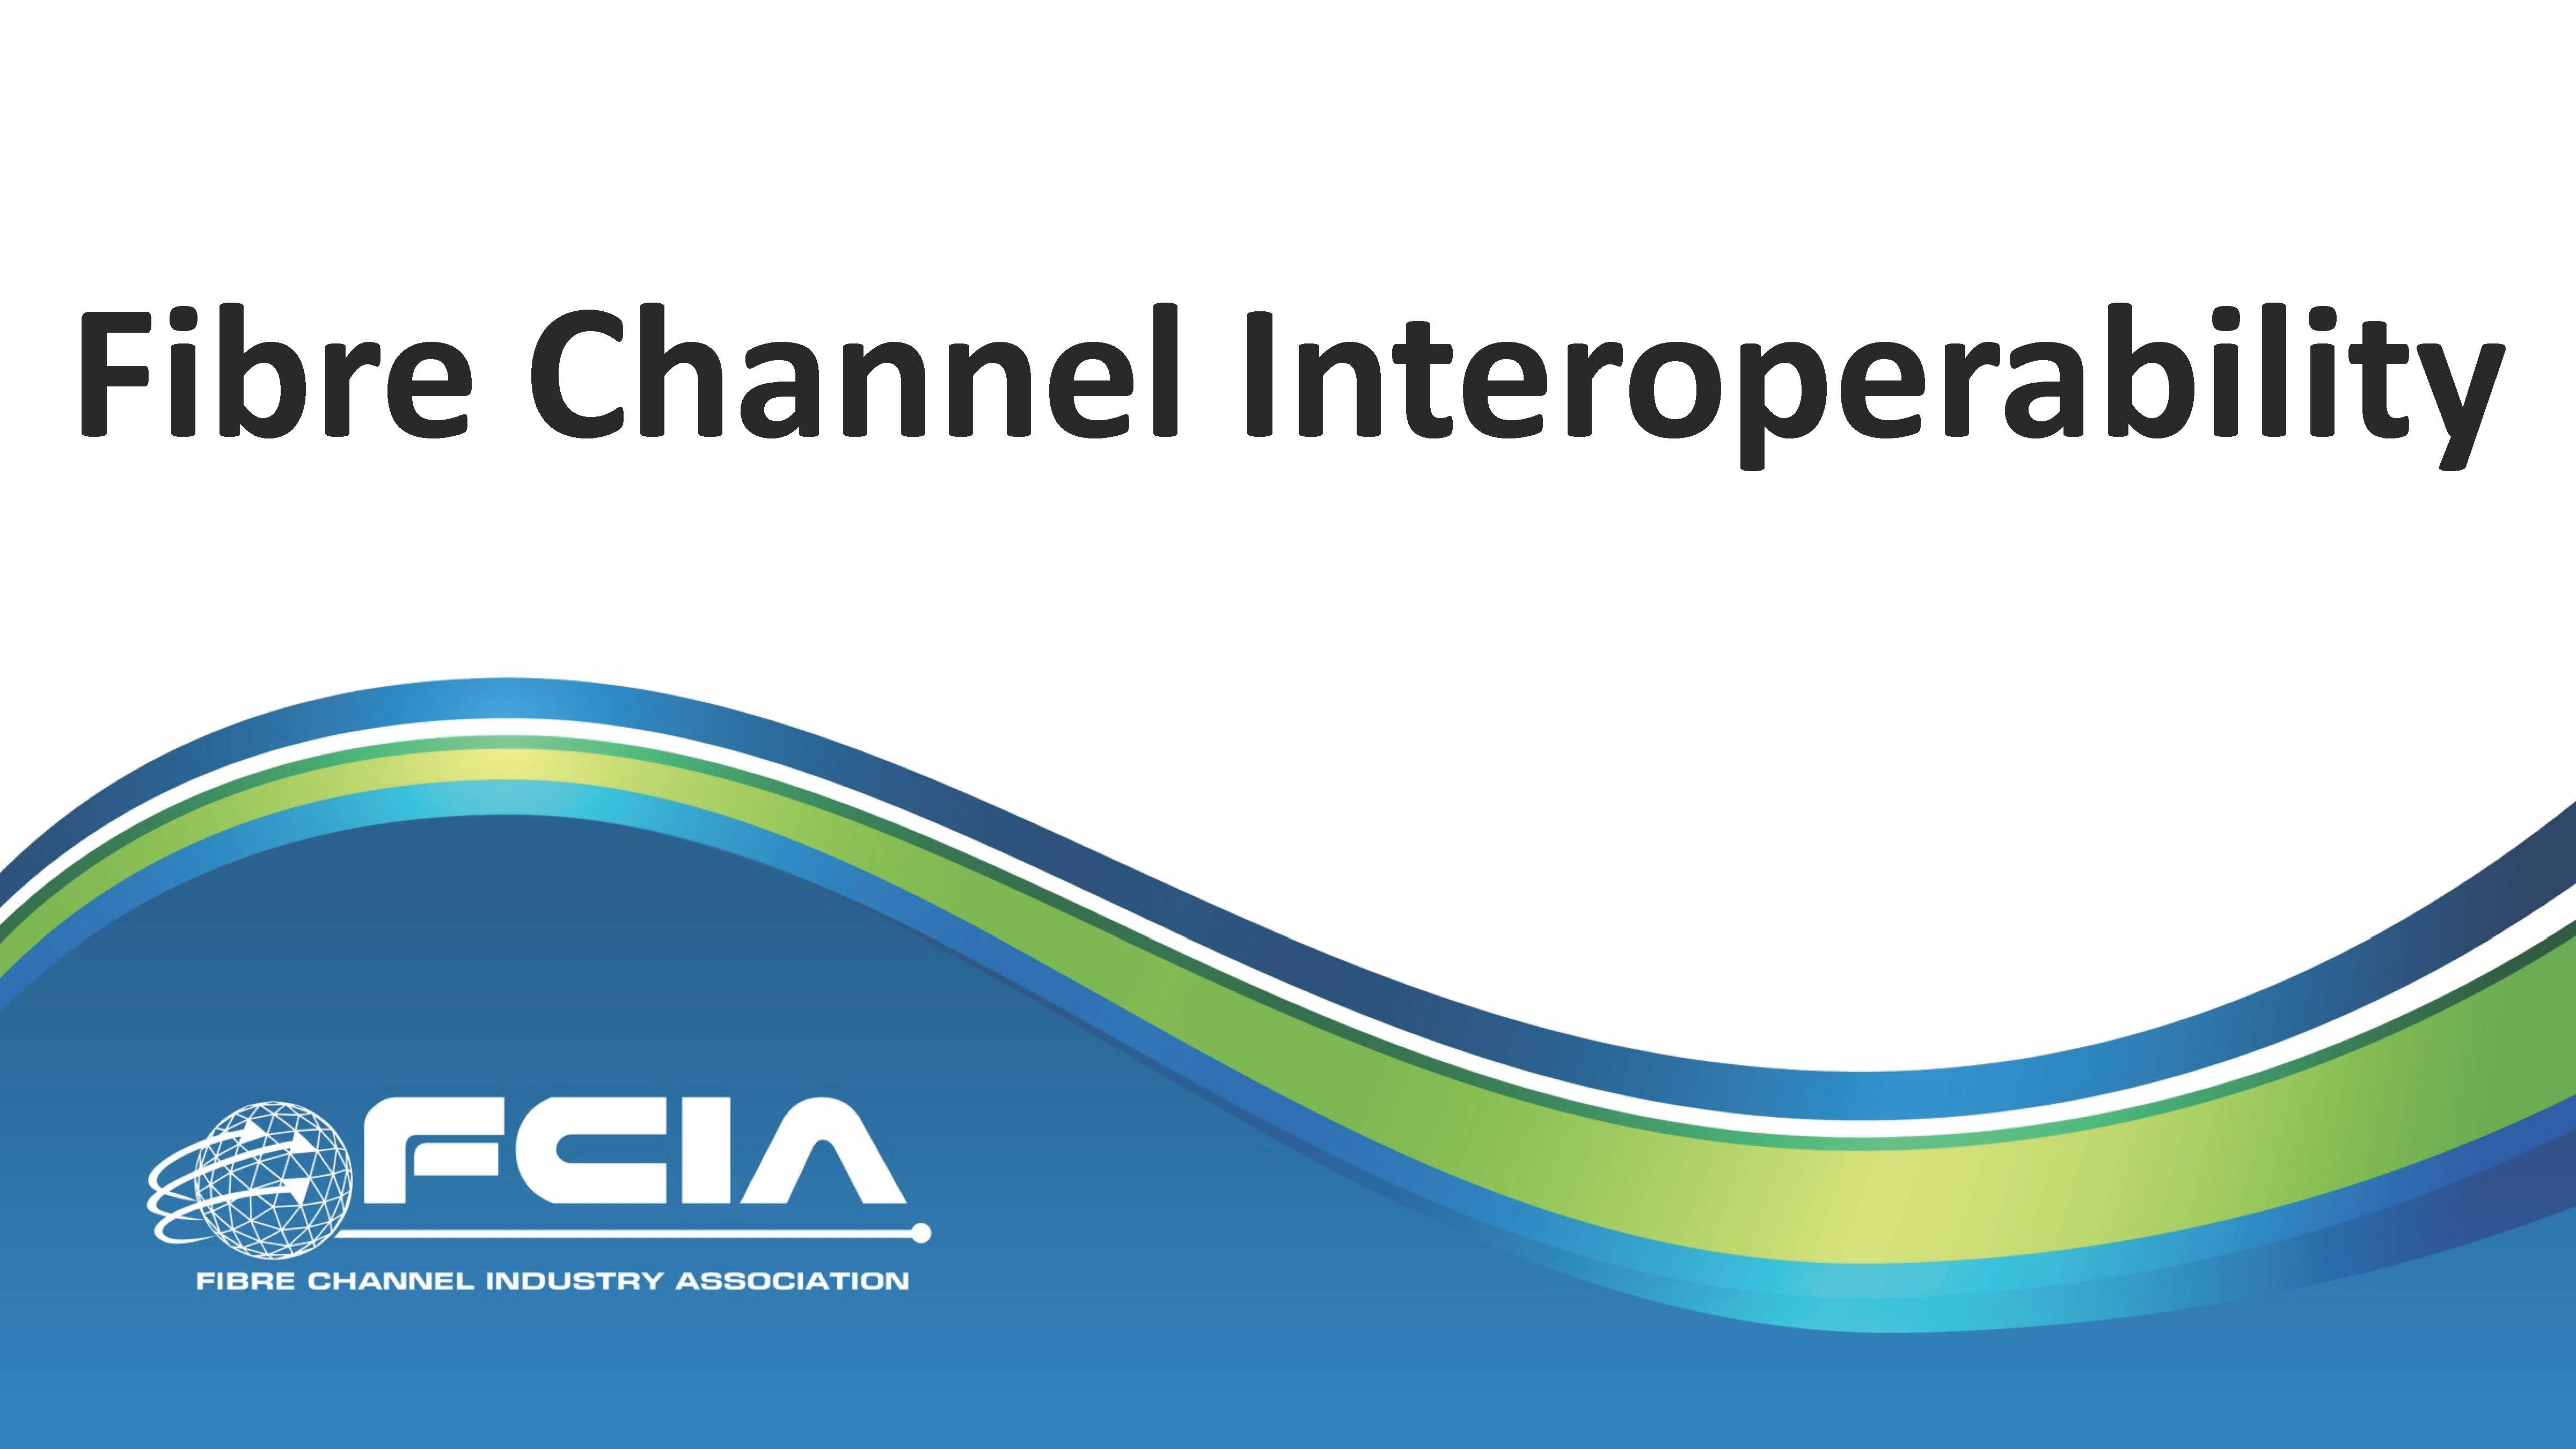 Fibre Channel Interoperability